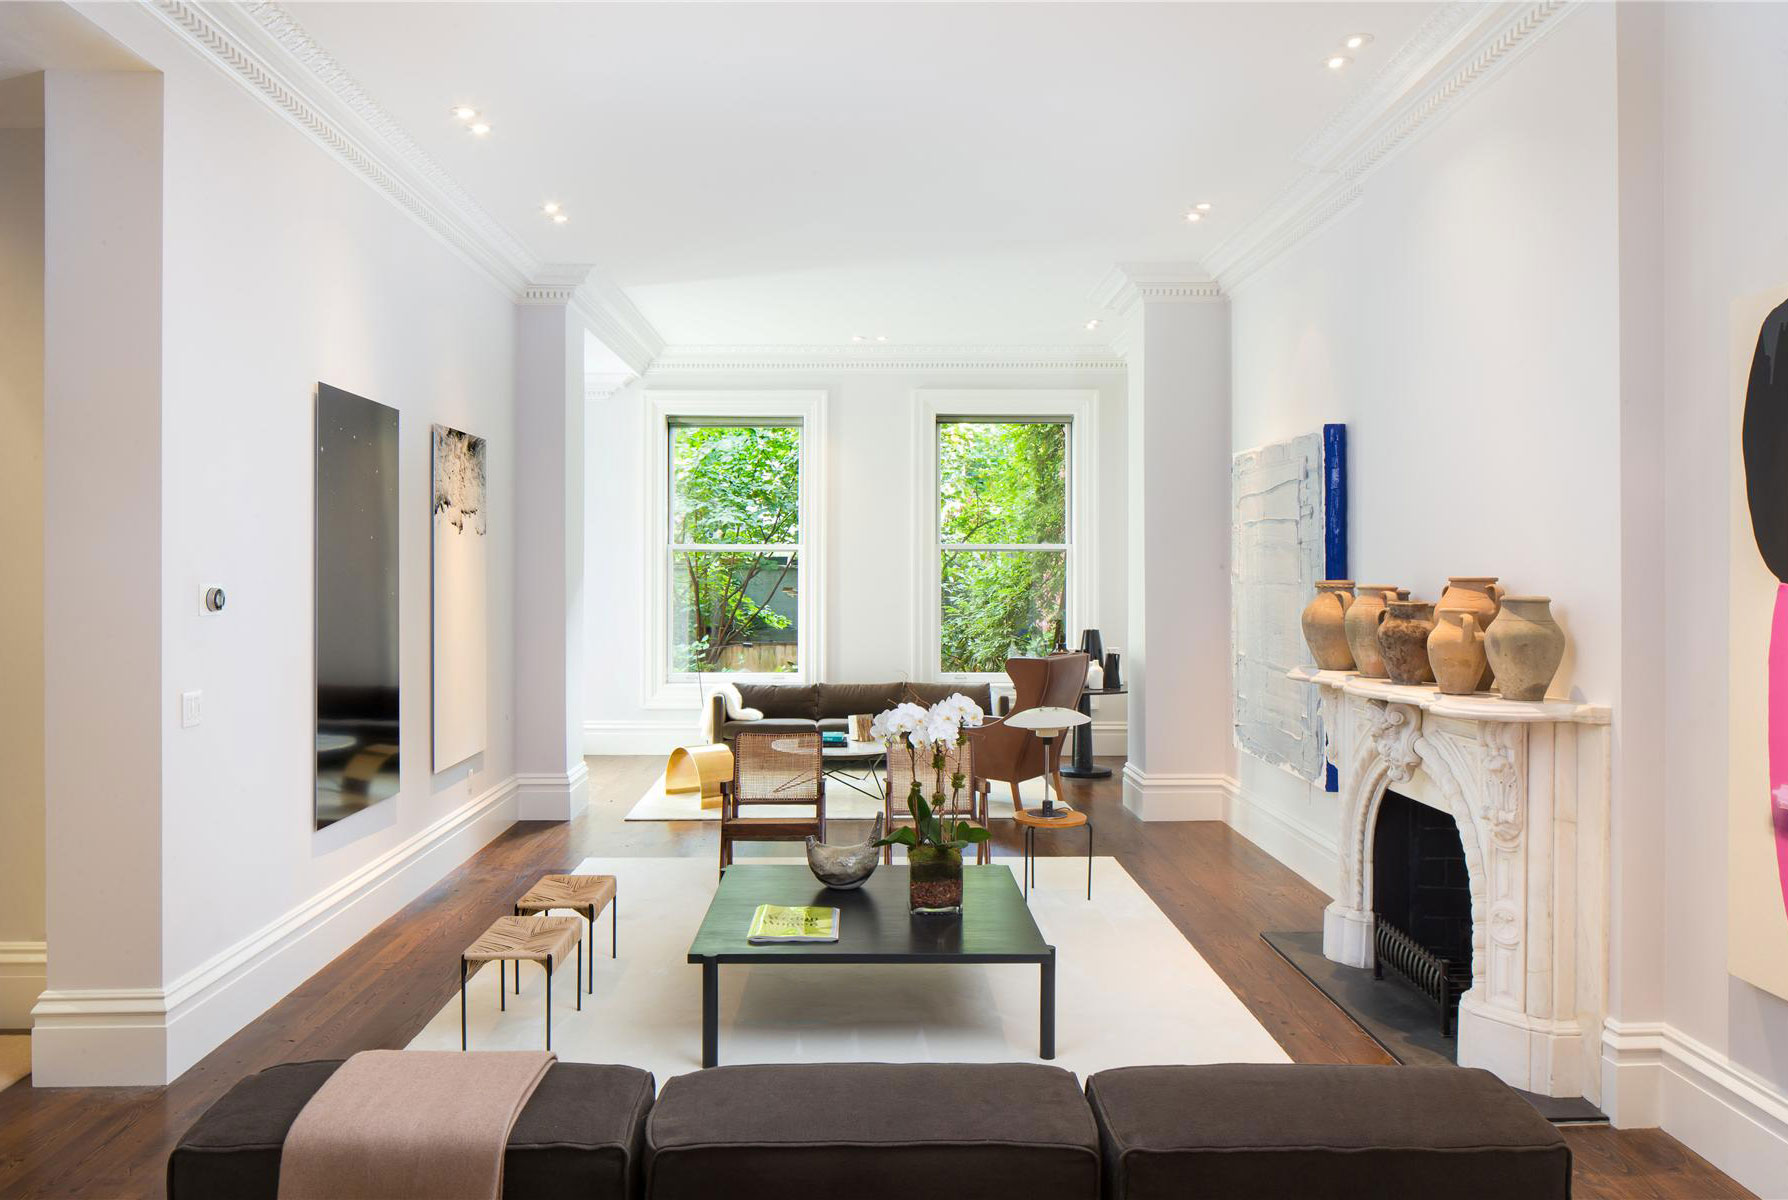 7 Fireplaces in Greenwich Village